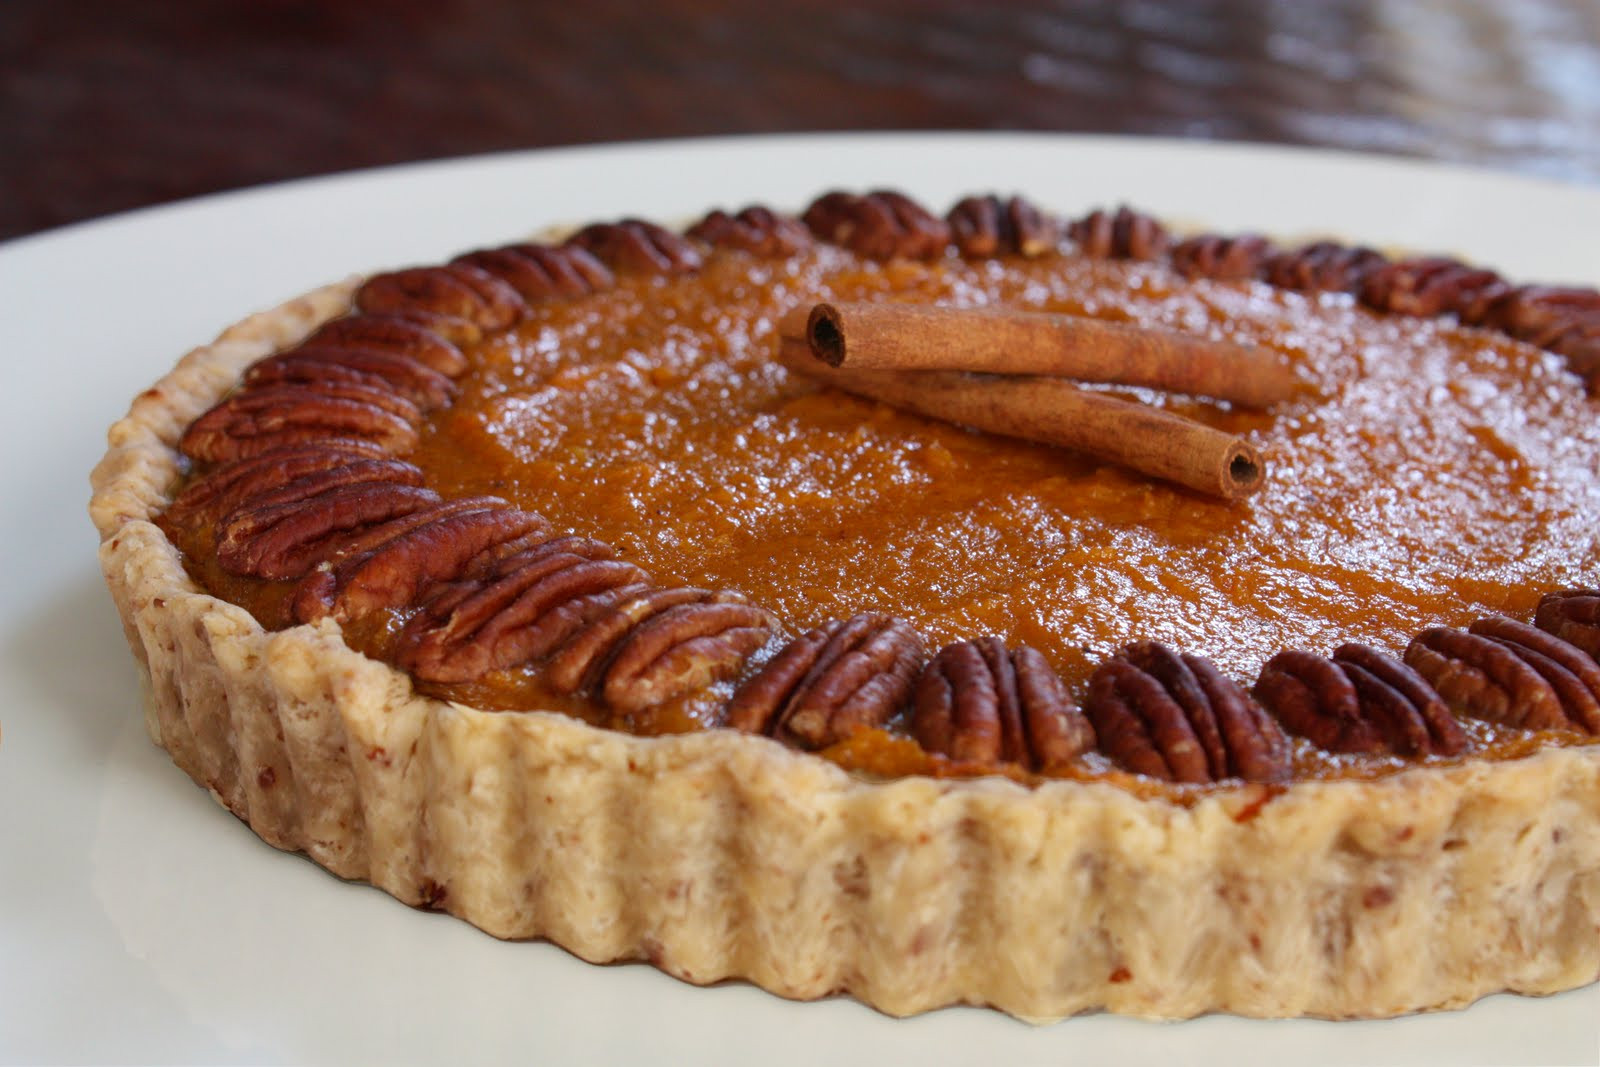 Best Sweet Potato Pie Recipe  The Best Sweet Potato Pie by Leah Chase of Dooky Chase